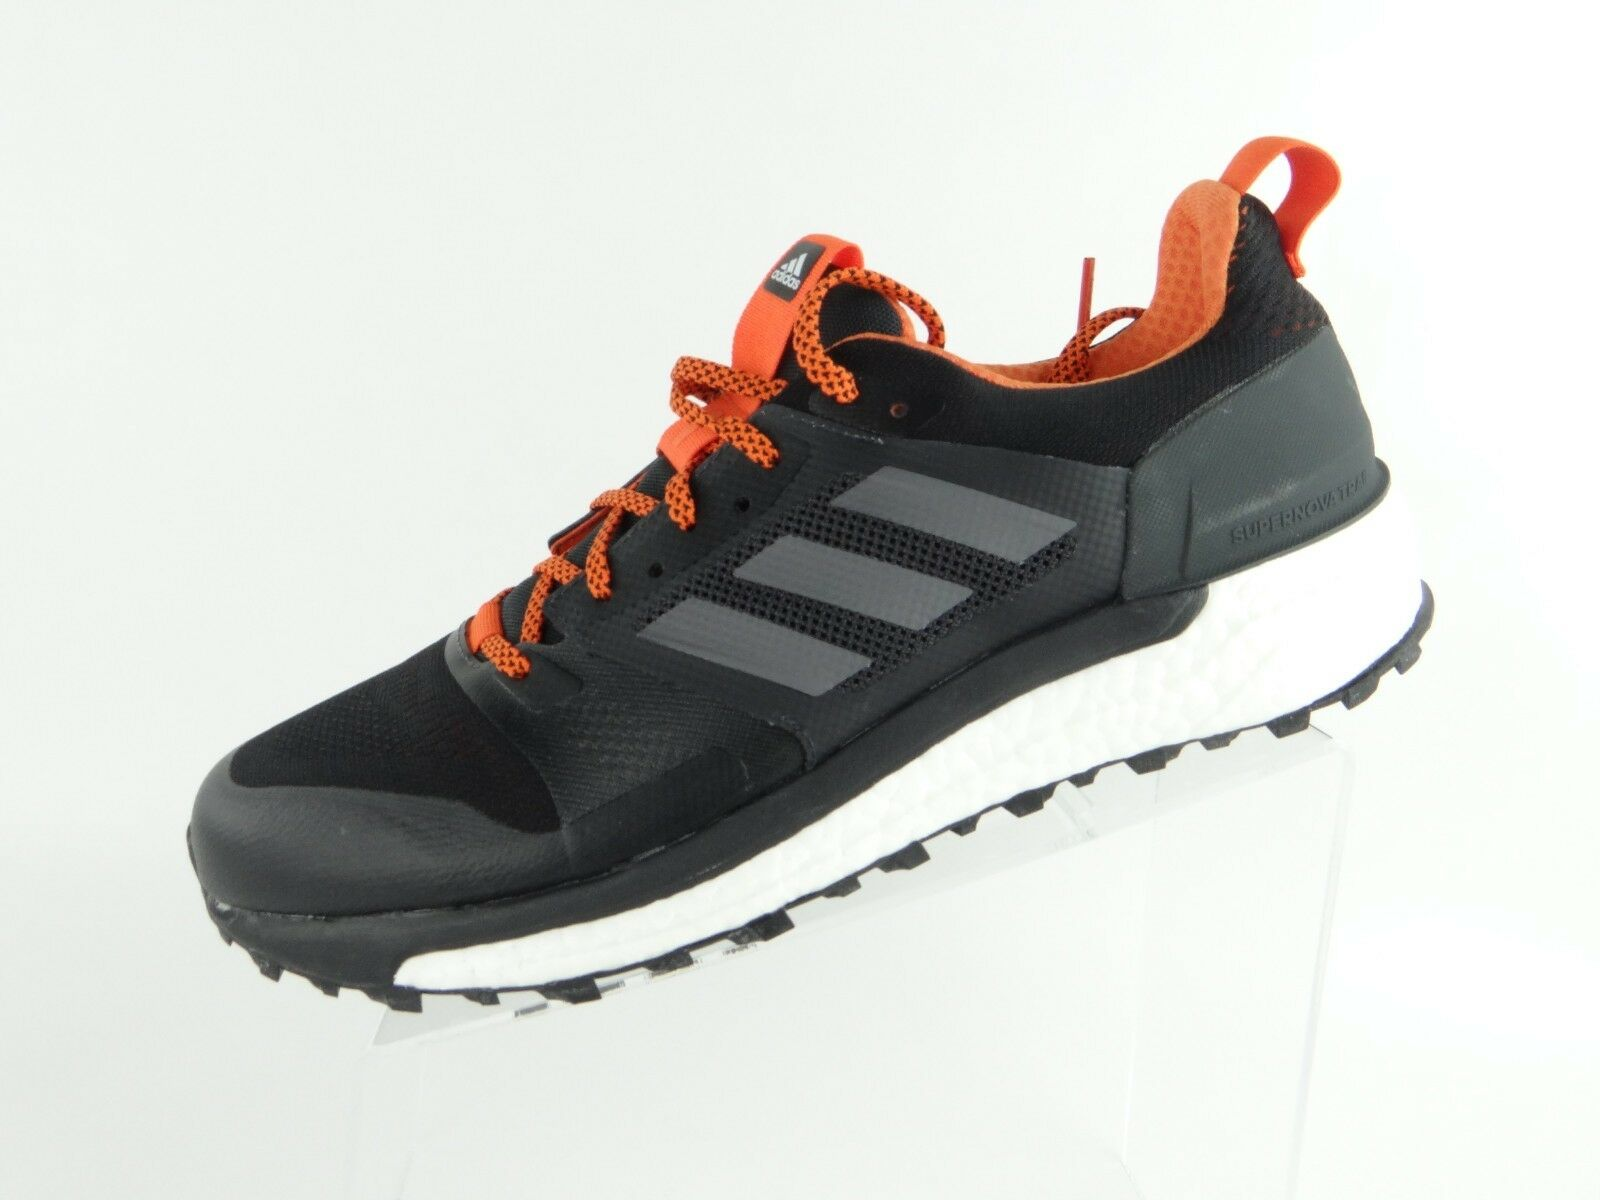 Adidas Supernova Boost Men's Size 12.5 Trail Running shoes Black Carbon CG4025